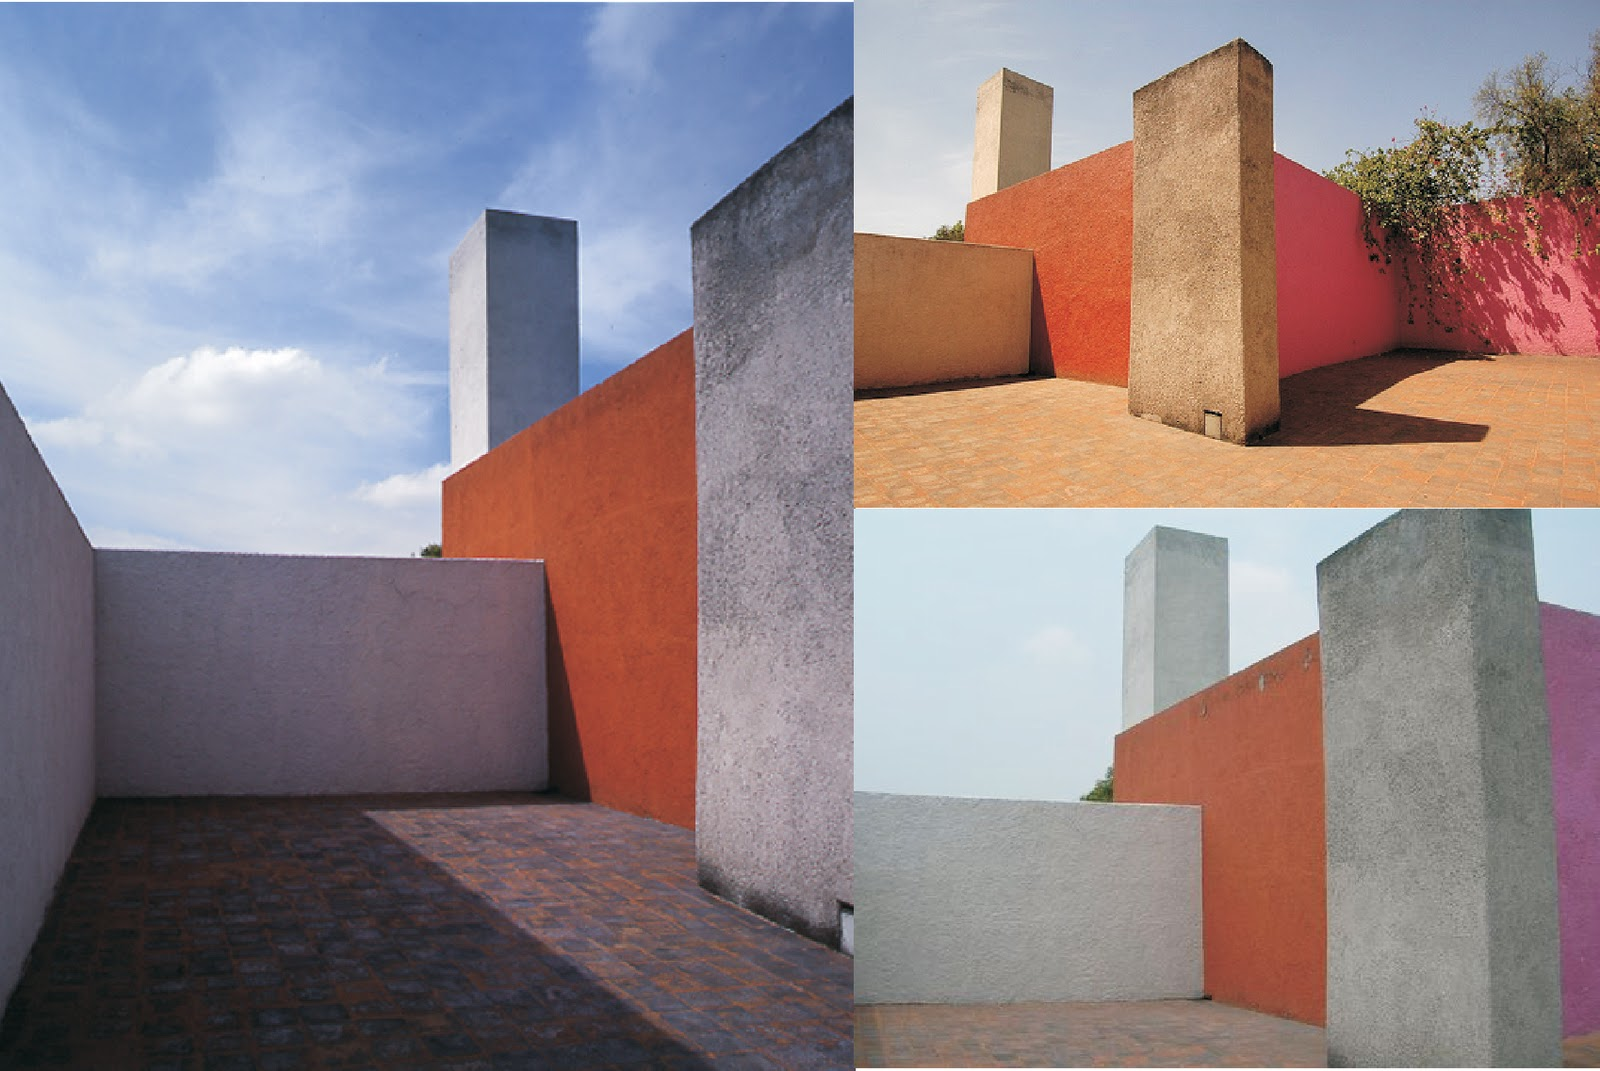 LUIS BARRAGAN (1902-1988) Mexican Architect - Poetic ...